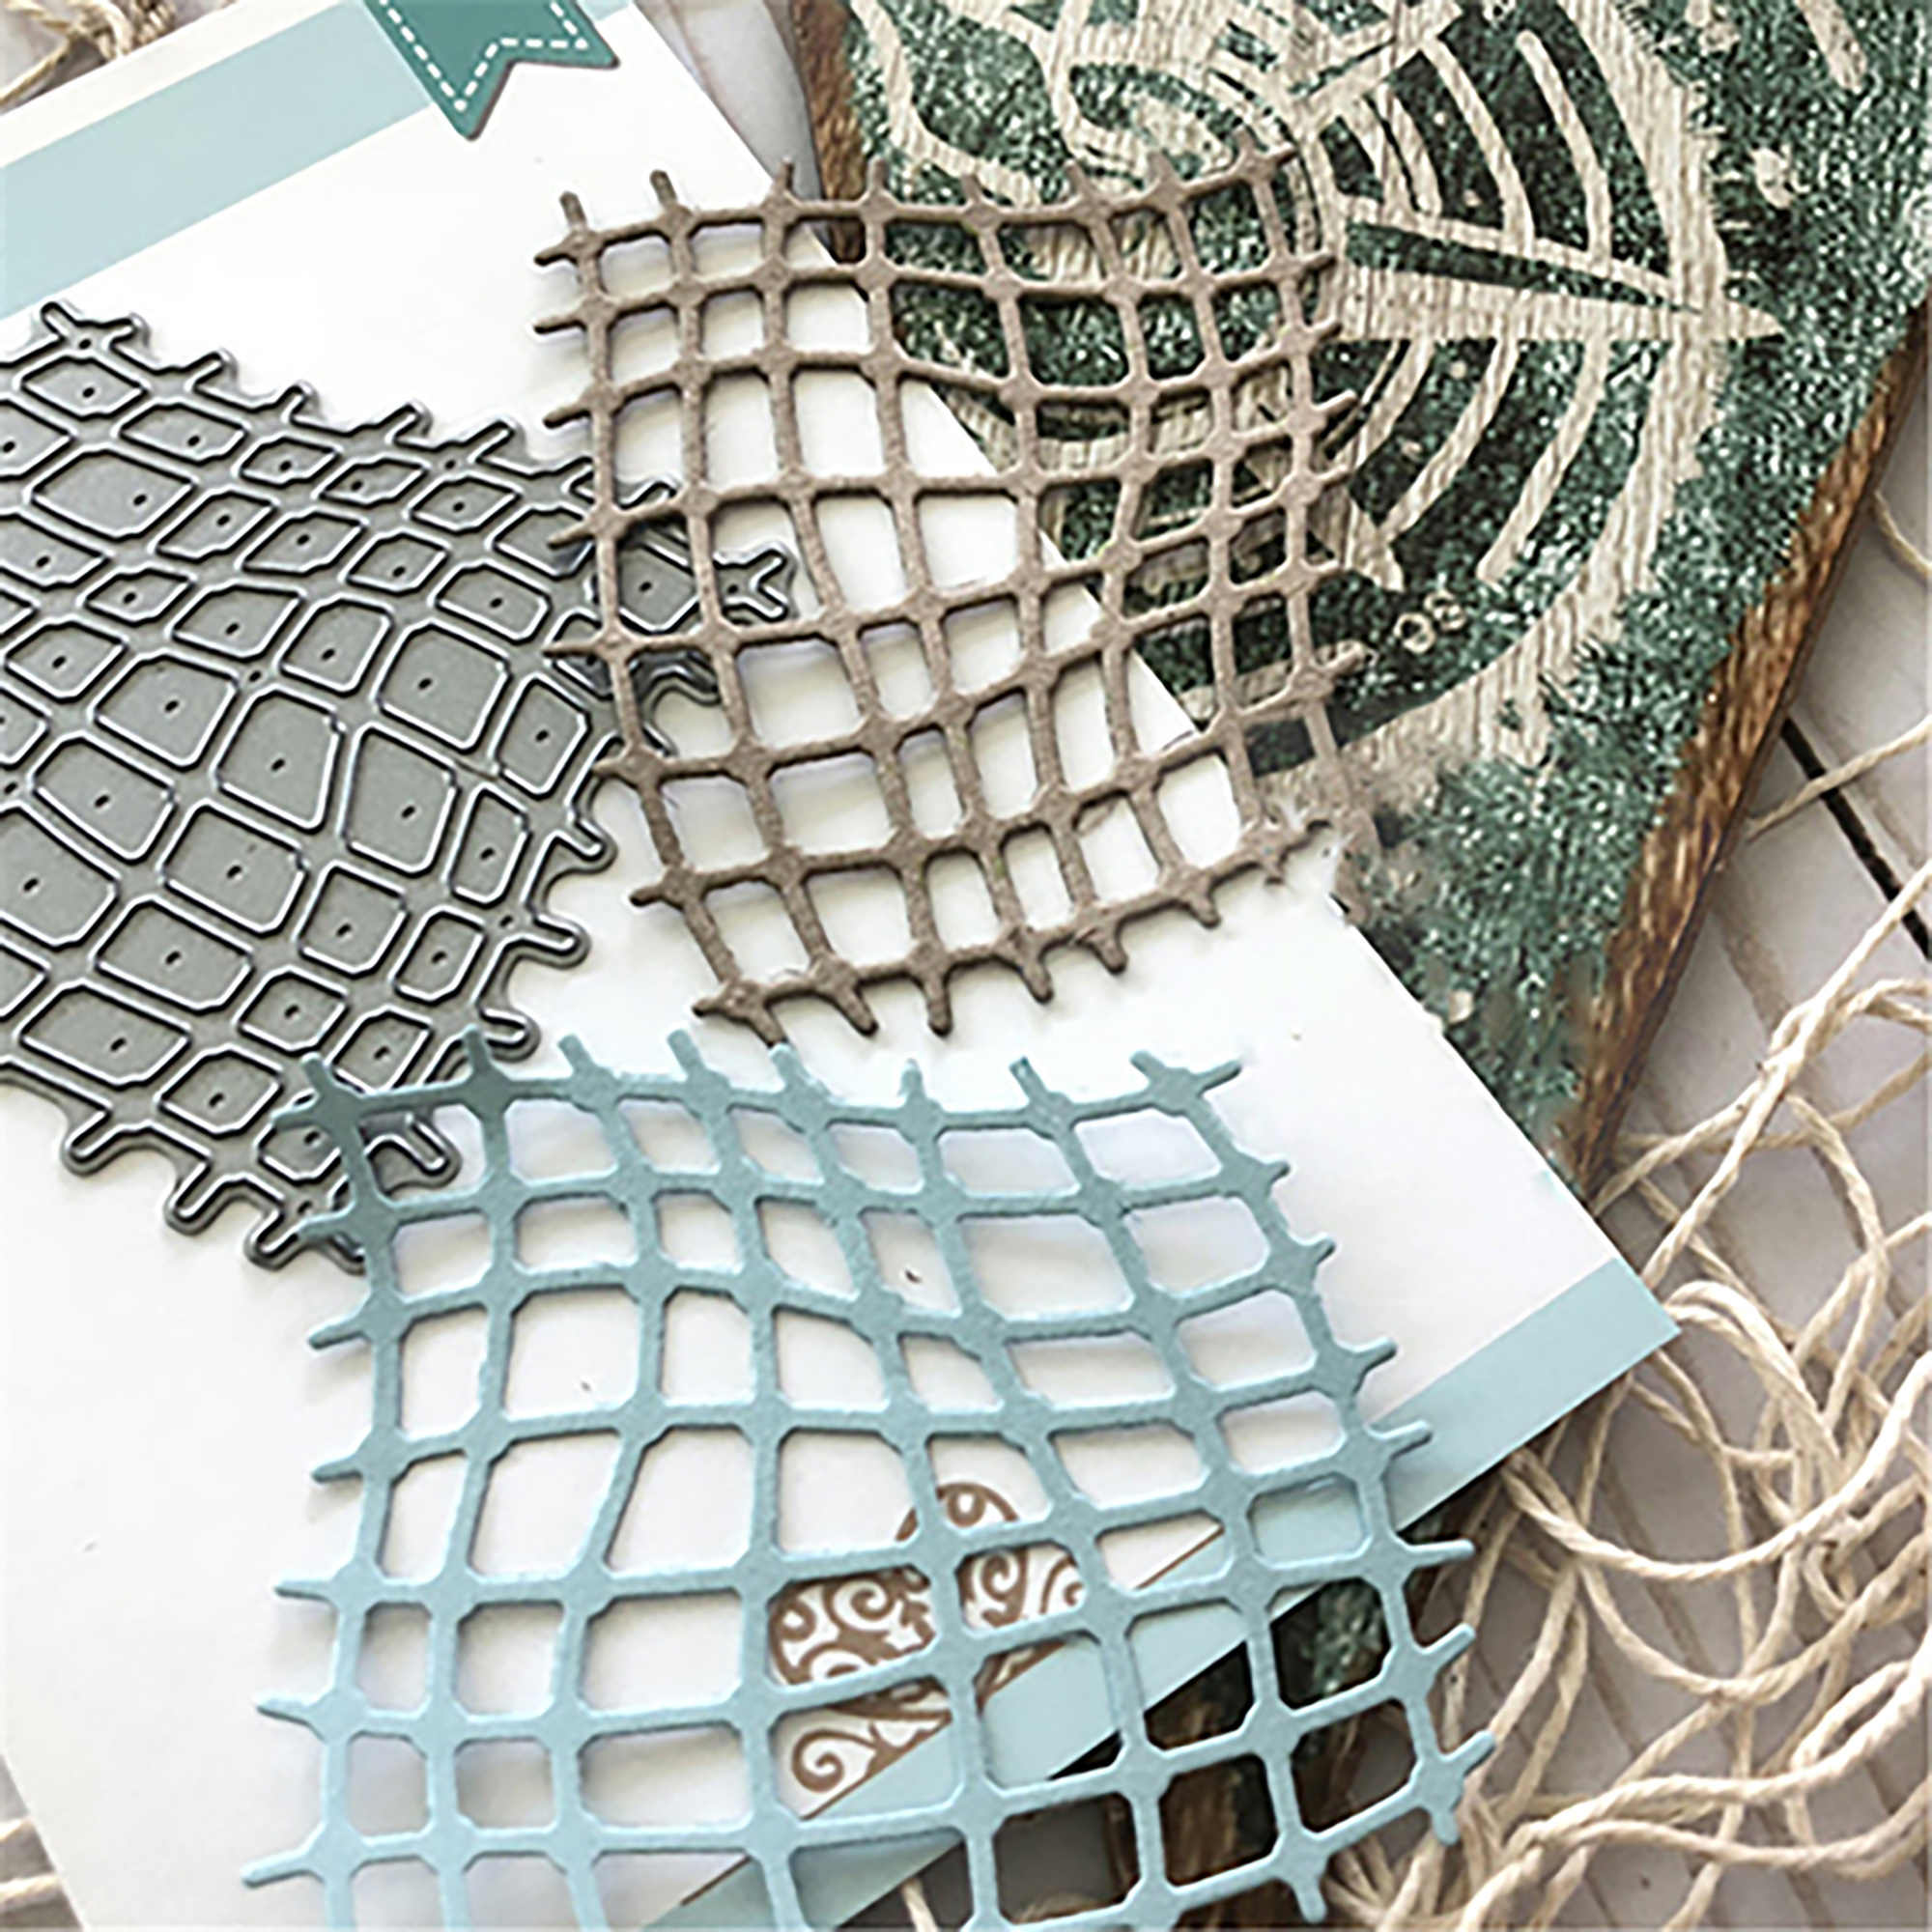 Fishing Net Metal Cutting Dies Scrapbooking For Card Making DIY Embossing Cuts New Craft Die Shell Fish Element